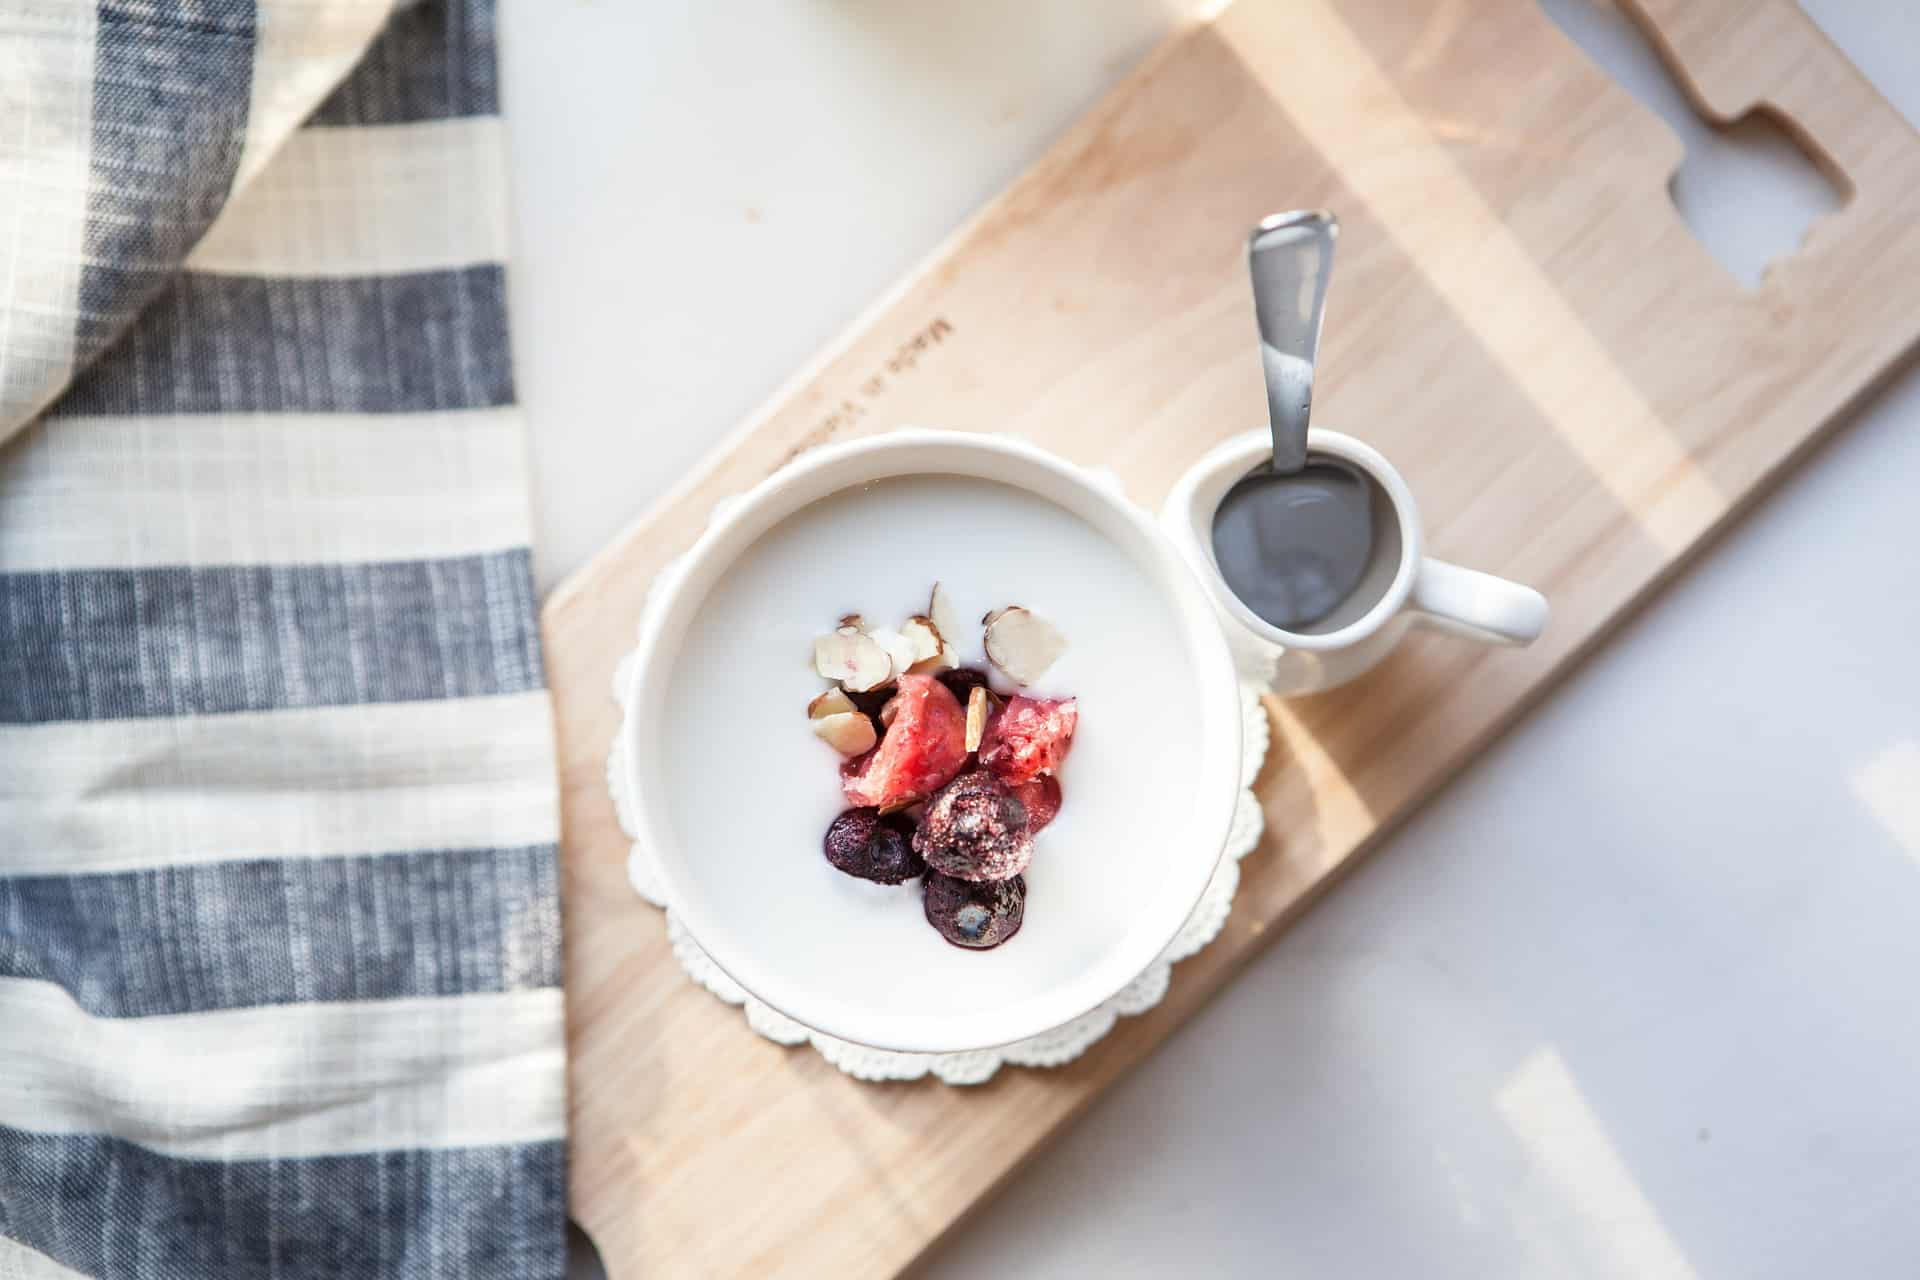 Top Reasons Why Yogurt Can Help You Shed Those Extra Pounds